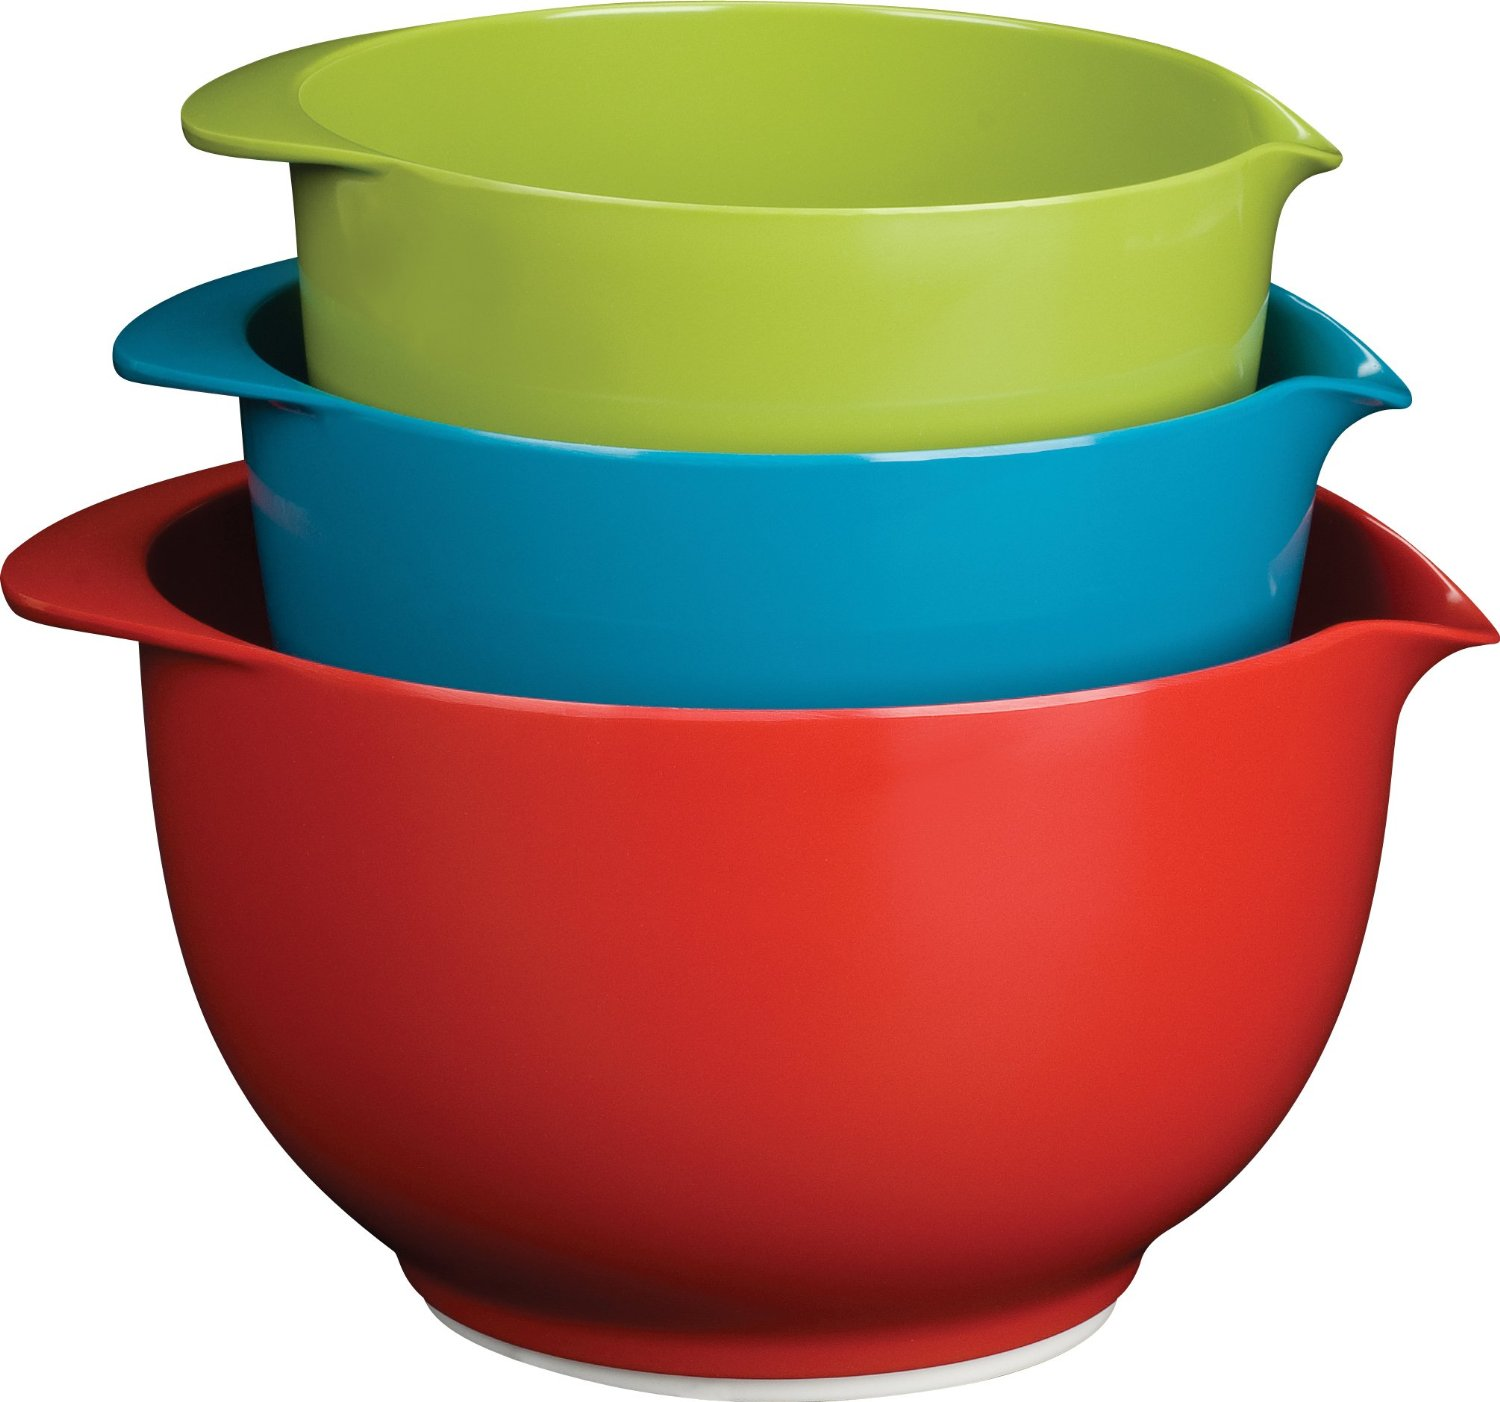 1500x1402 Baking Clipart Mixing Bowl